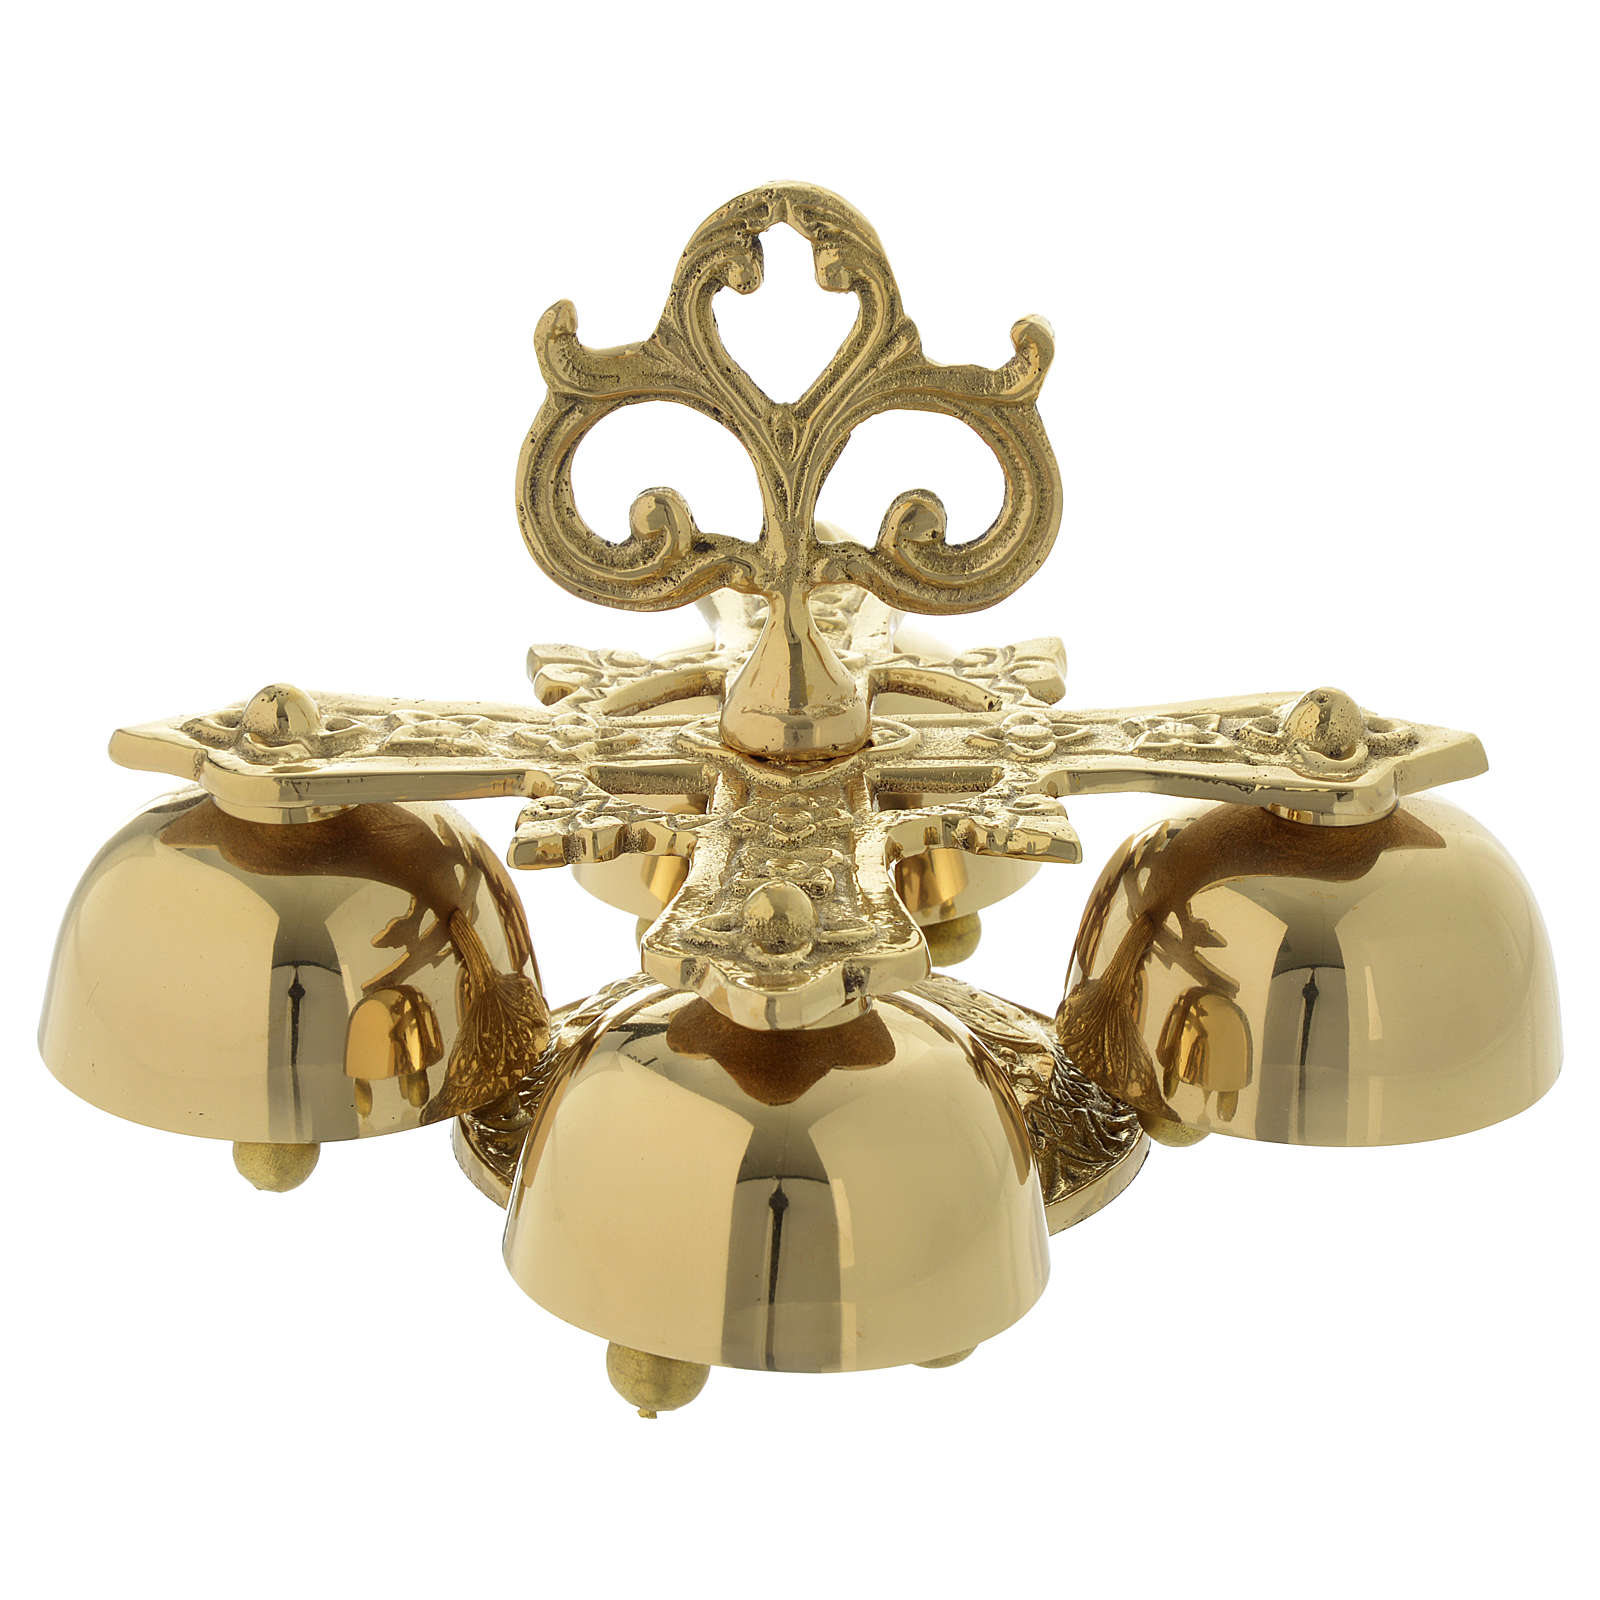 Liturgical bell with 4 sounds in gold-plated brass 3